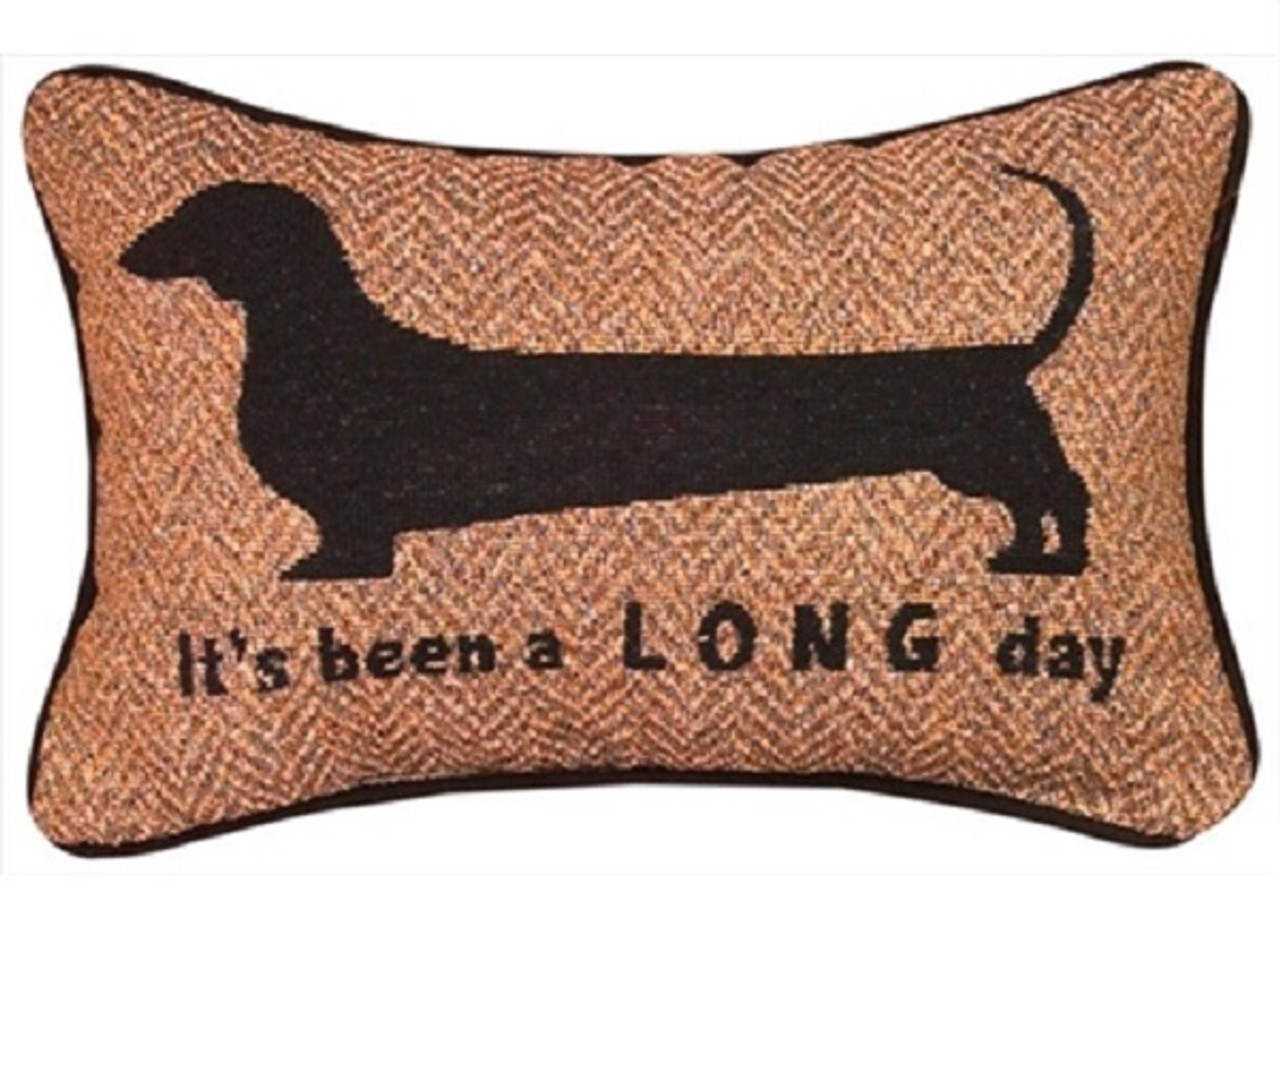 Loong Day Accent Pillow